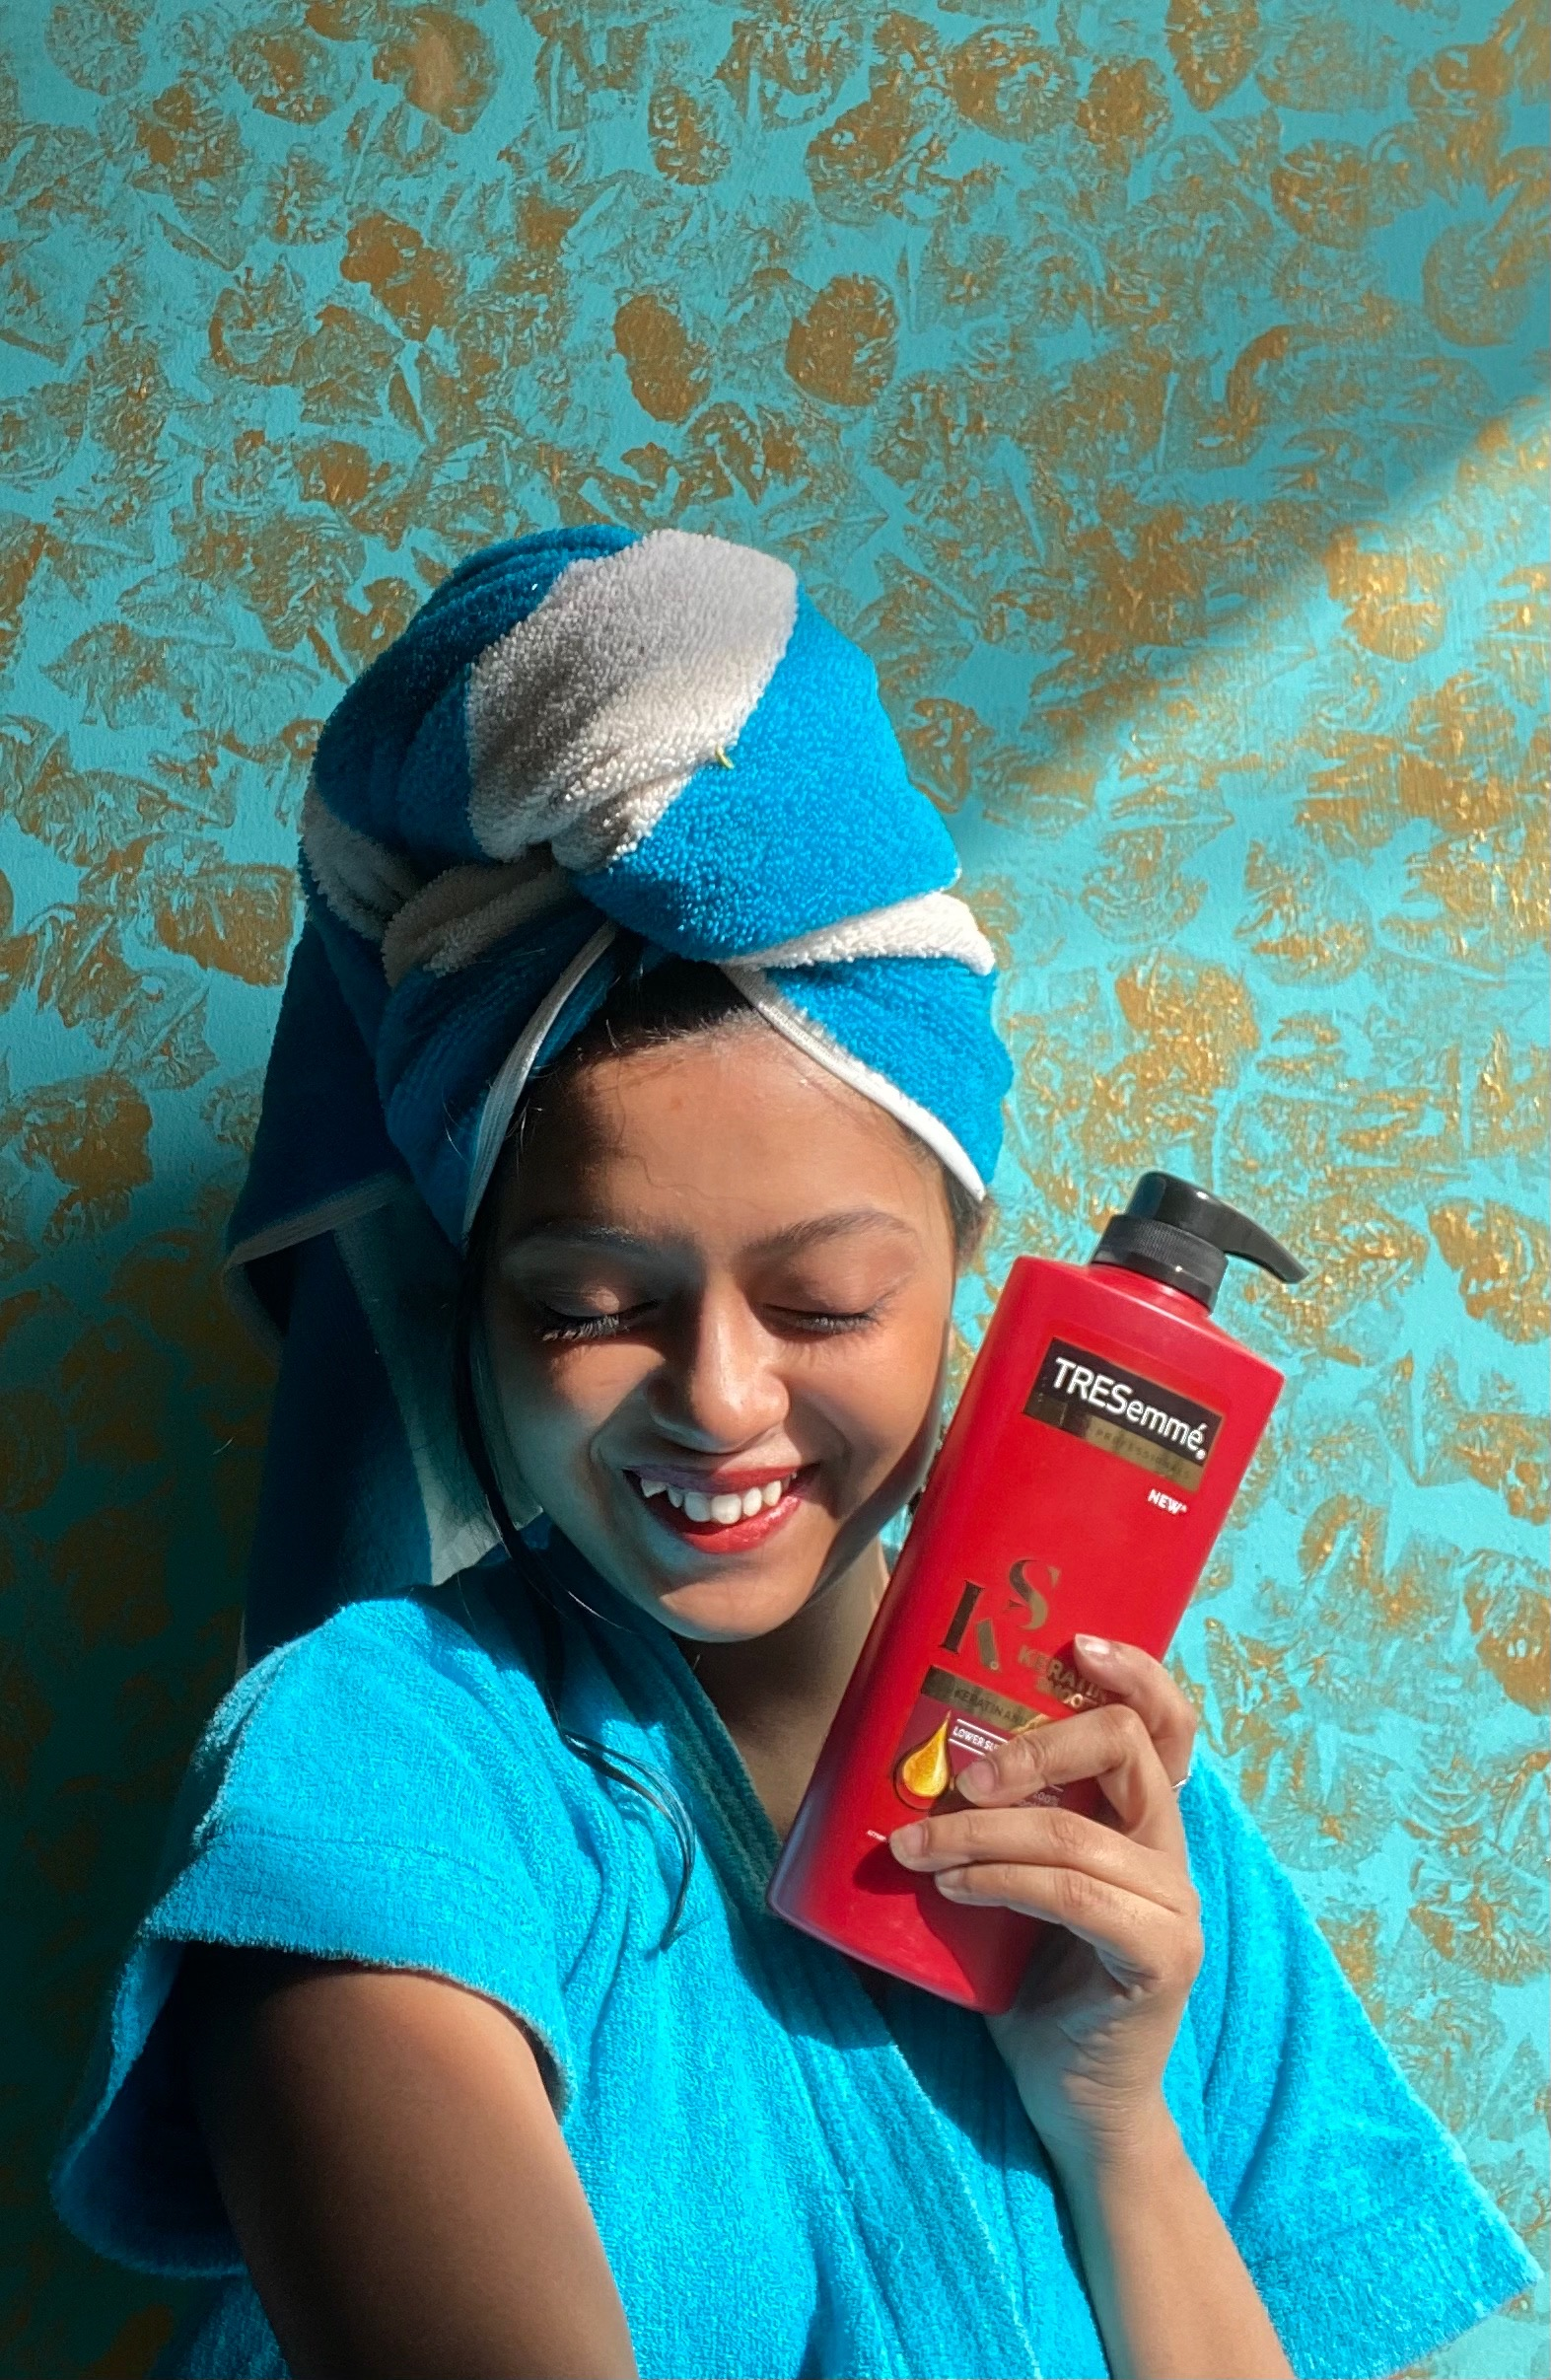 TRESemmé Keratin Smooth Infusing Shampoo pic 1-Best for oily scalp or oil treatment-By anupoma_misra